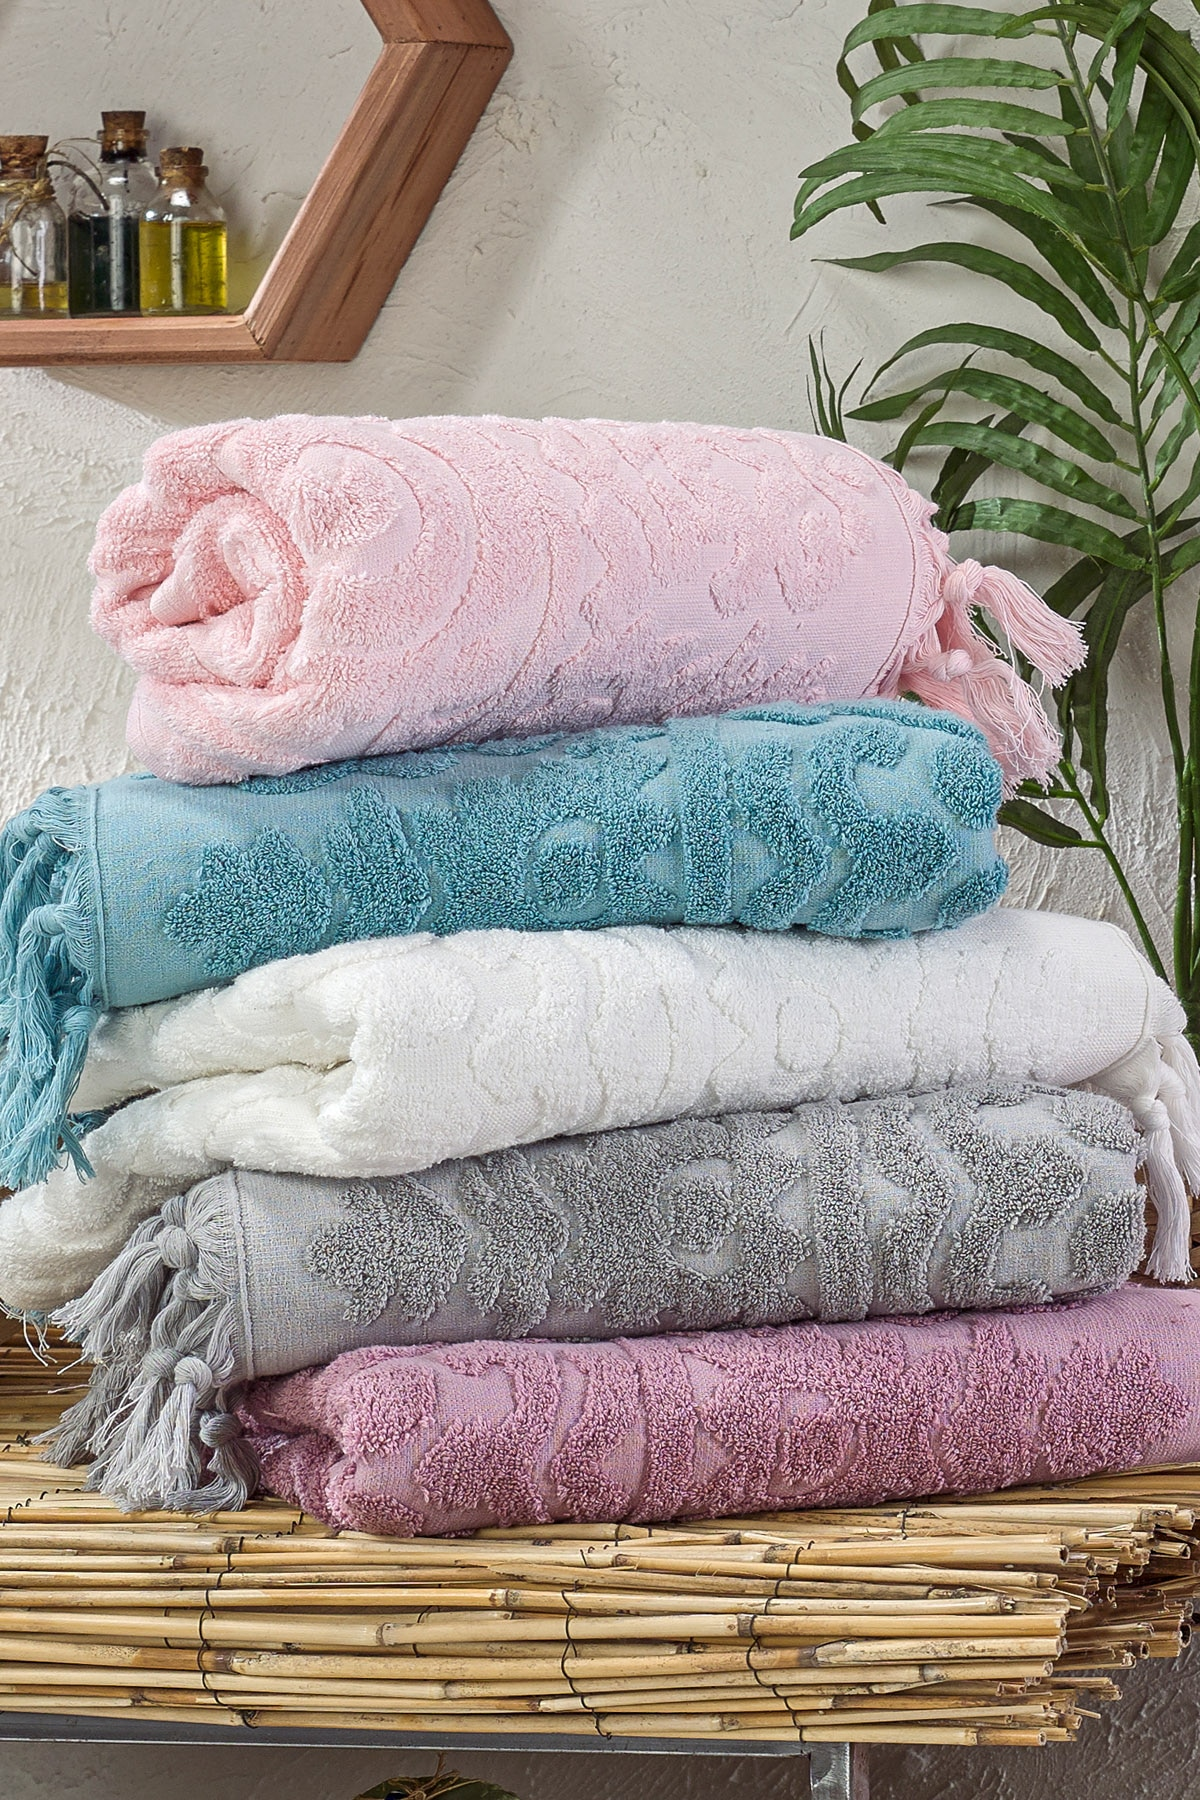 Organic Cotton %100 Home Supplies Soft Face/Hand Towel Thick Absorbent Cloth Dishcloths Hanging Cloth Home Accessories 50*90cm